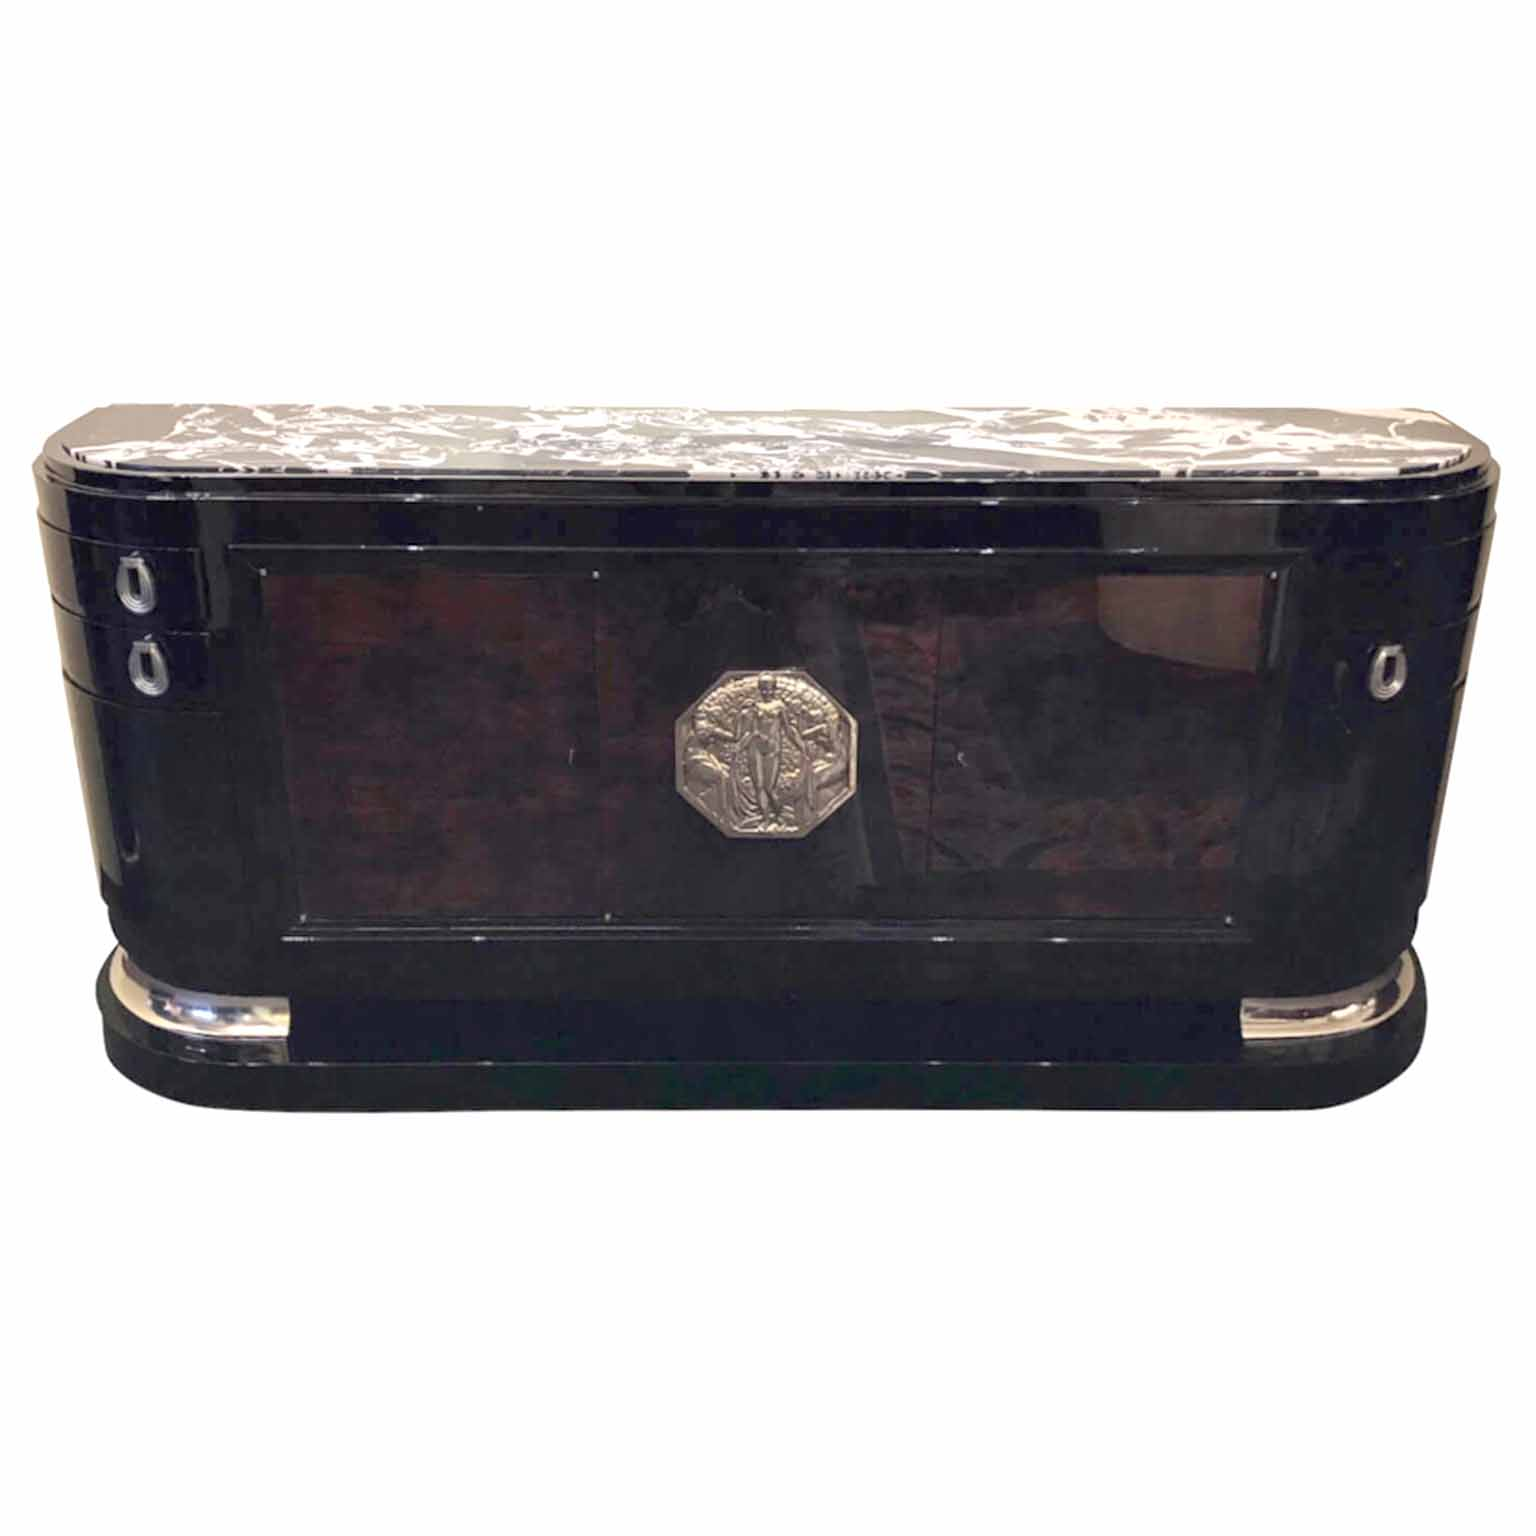 Art Deco demi lune Sideboard with black and white marble top